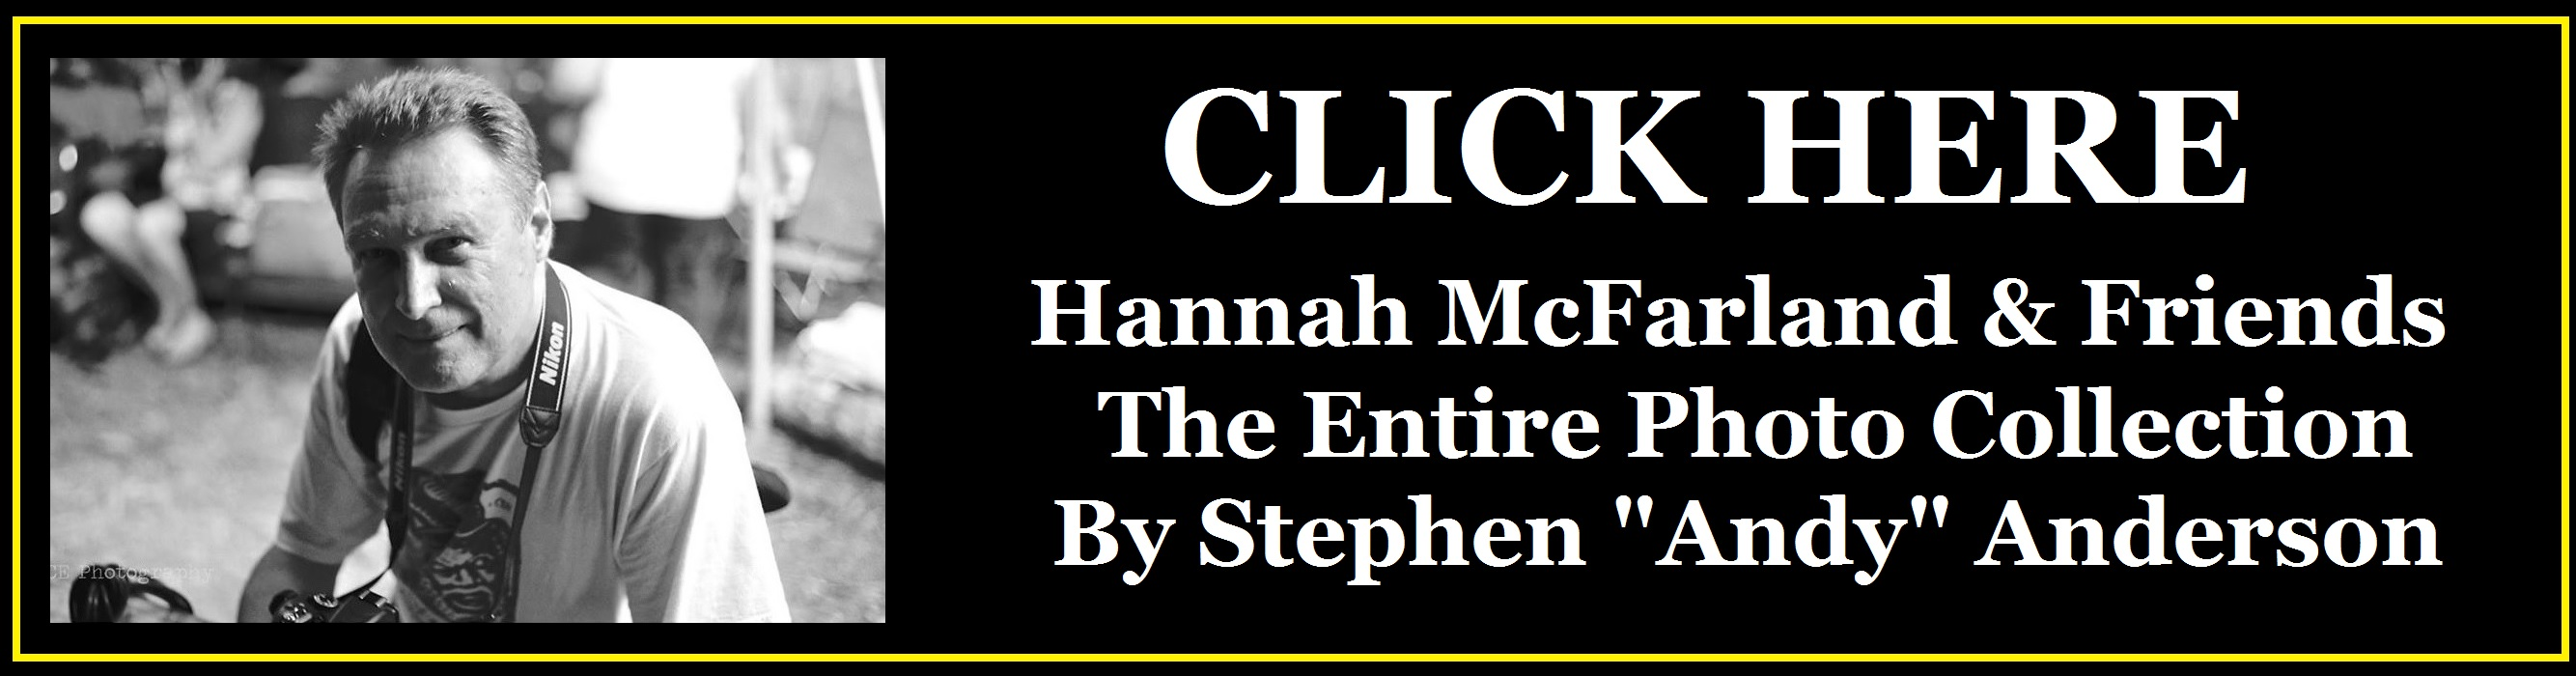 andy banner for hannah